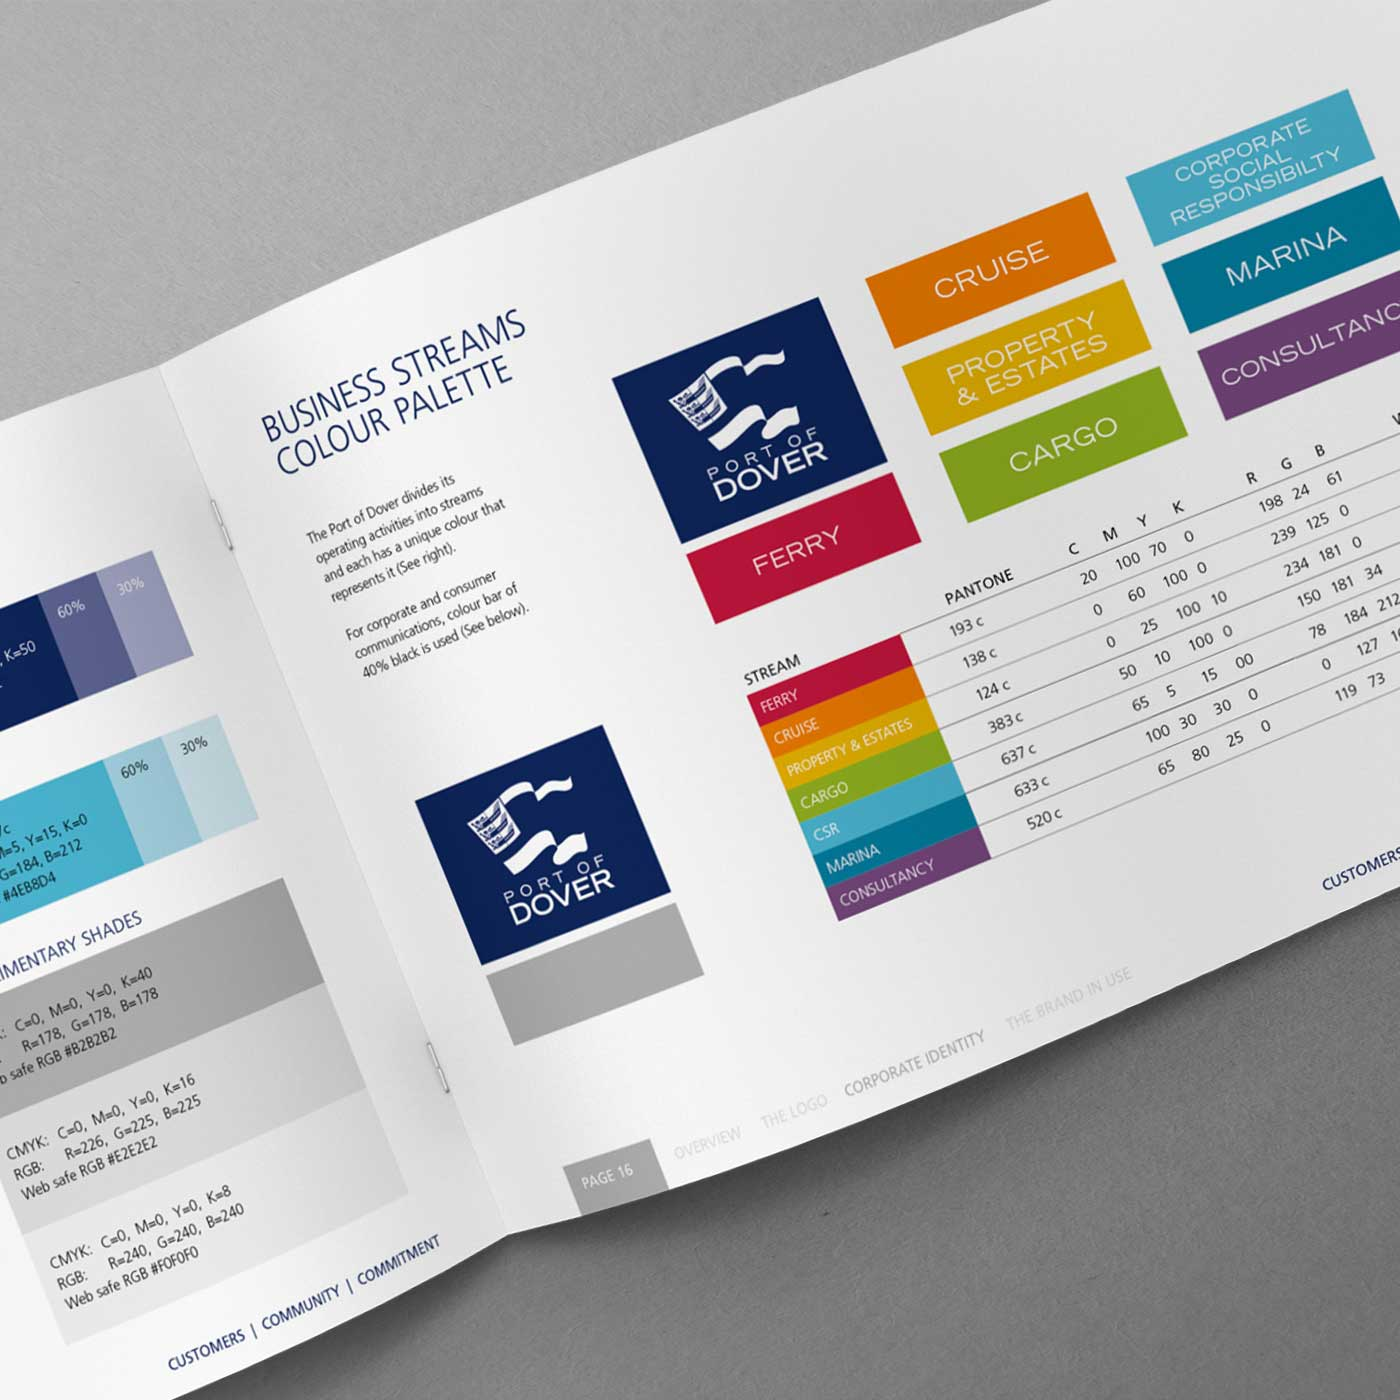 Port of Dover Brand Guidelines - Business Streams